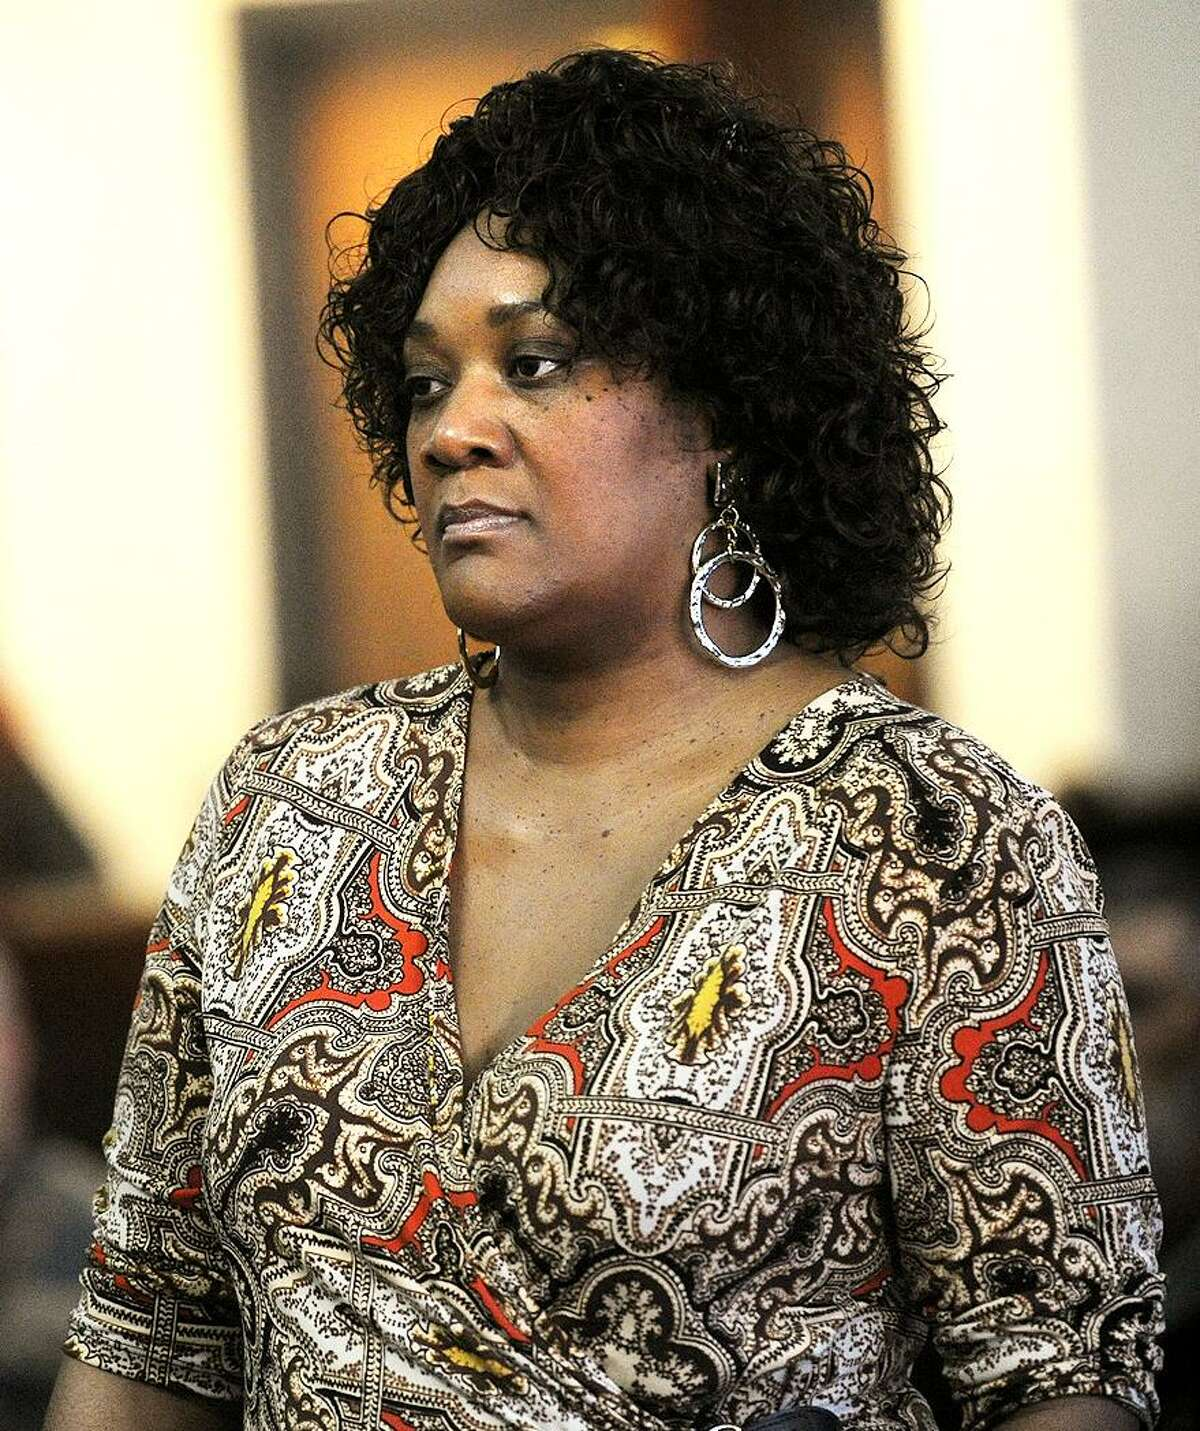 Patricia Daniels at Superior Court in Bridgeport, Conn. on, January 22, 2015.